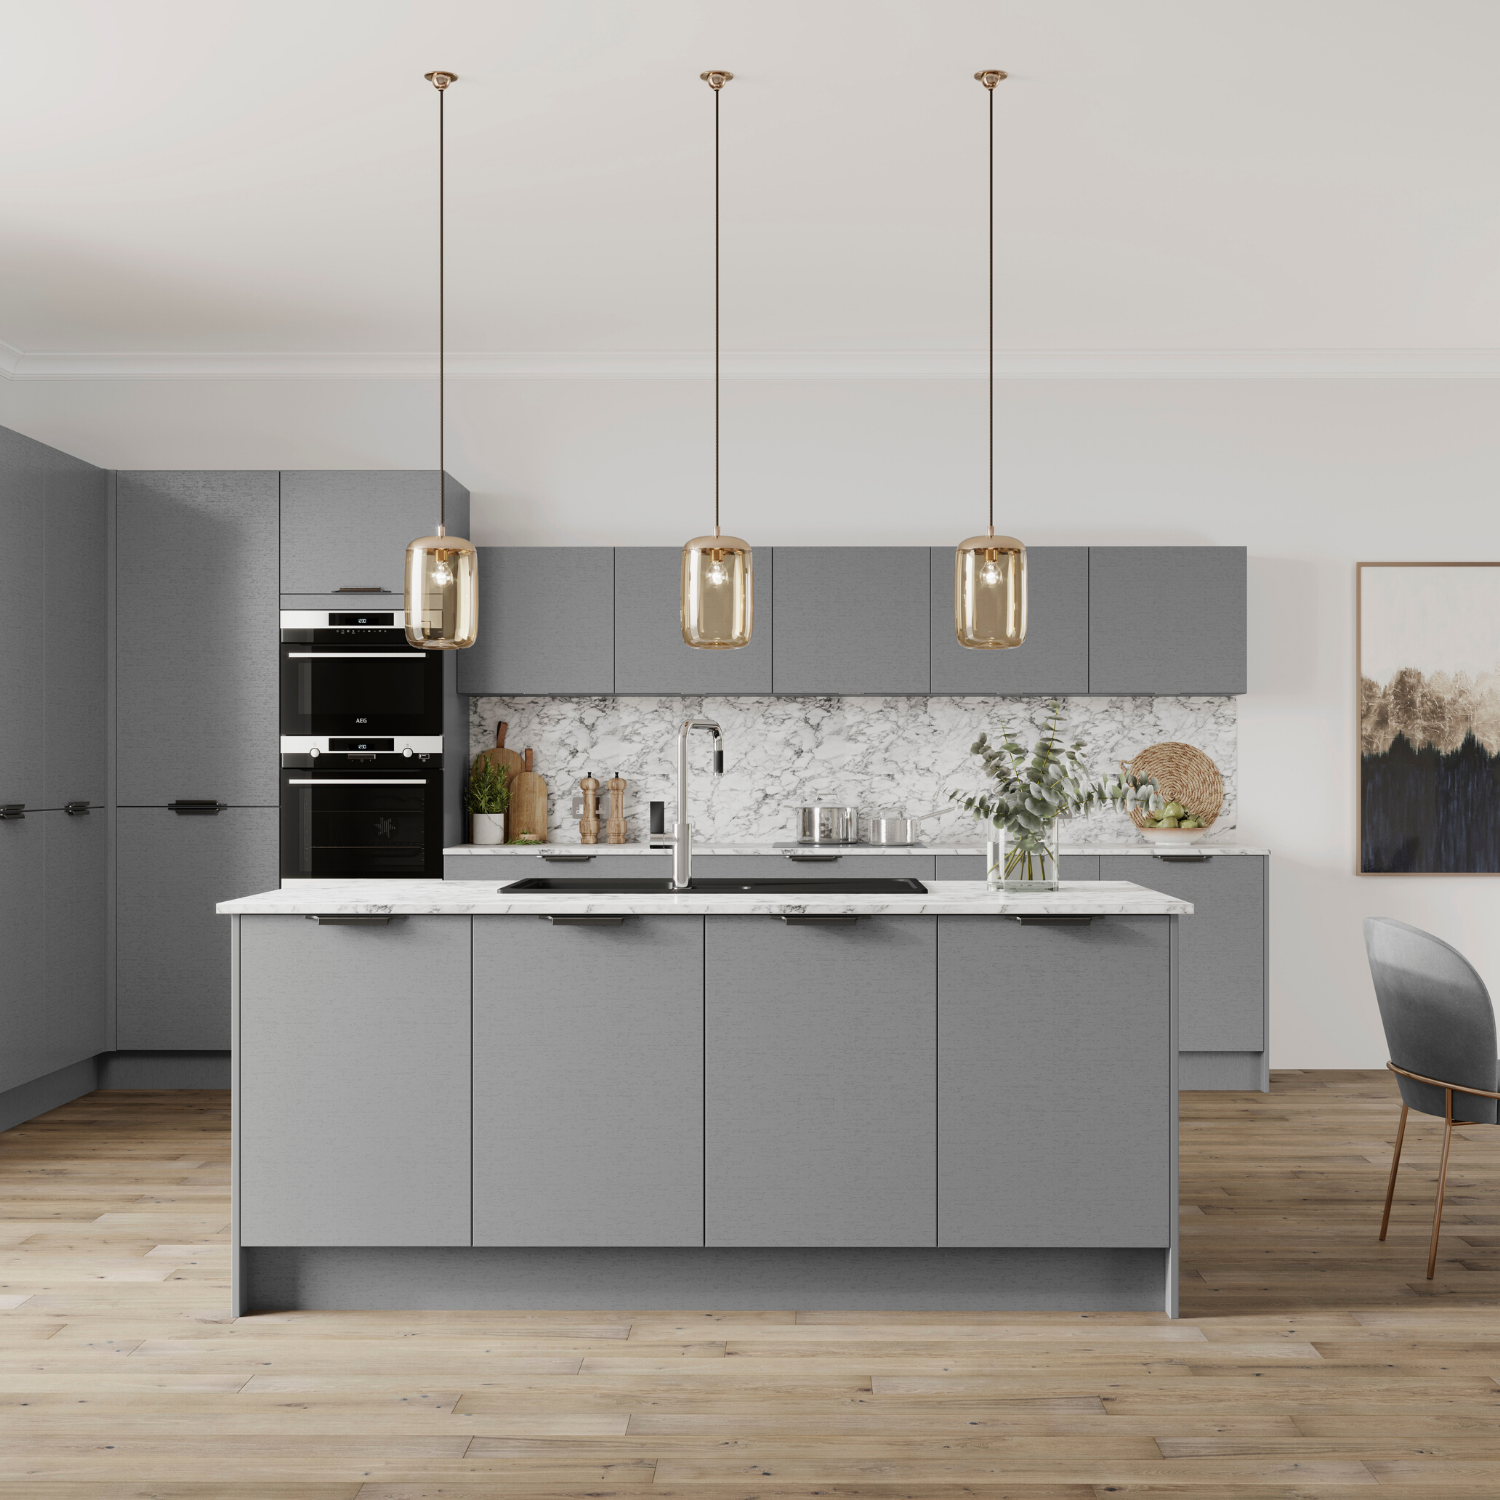 4 Steps to Your New Kitchen